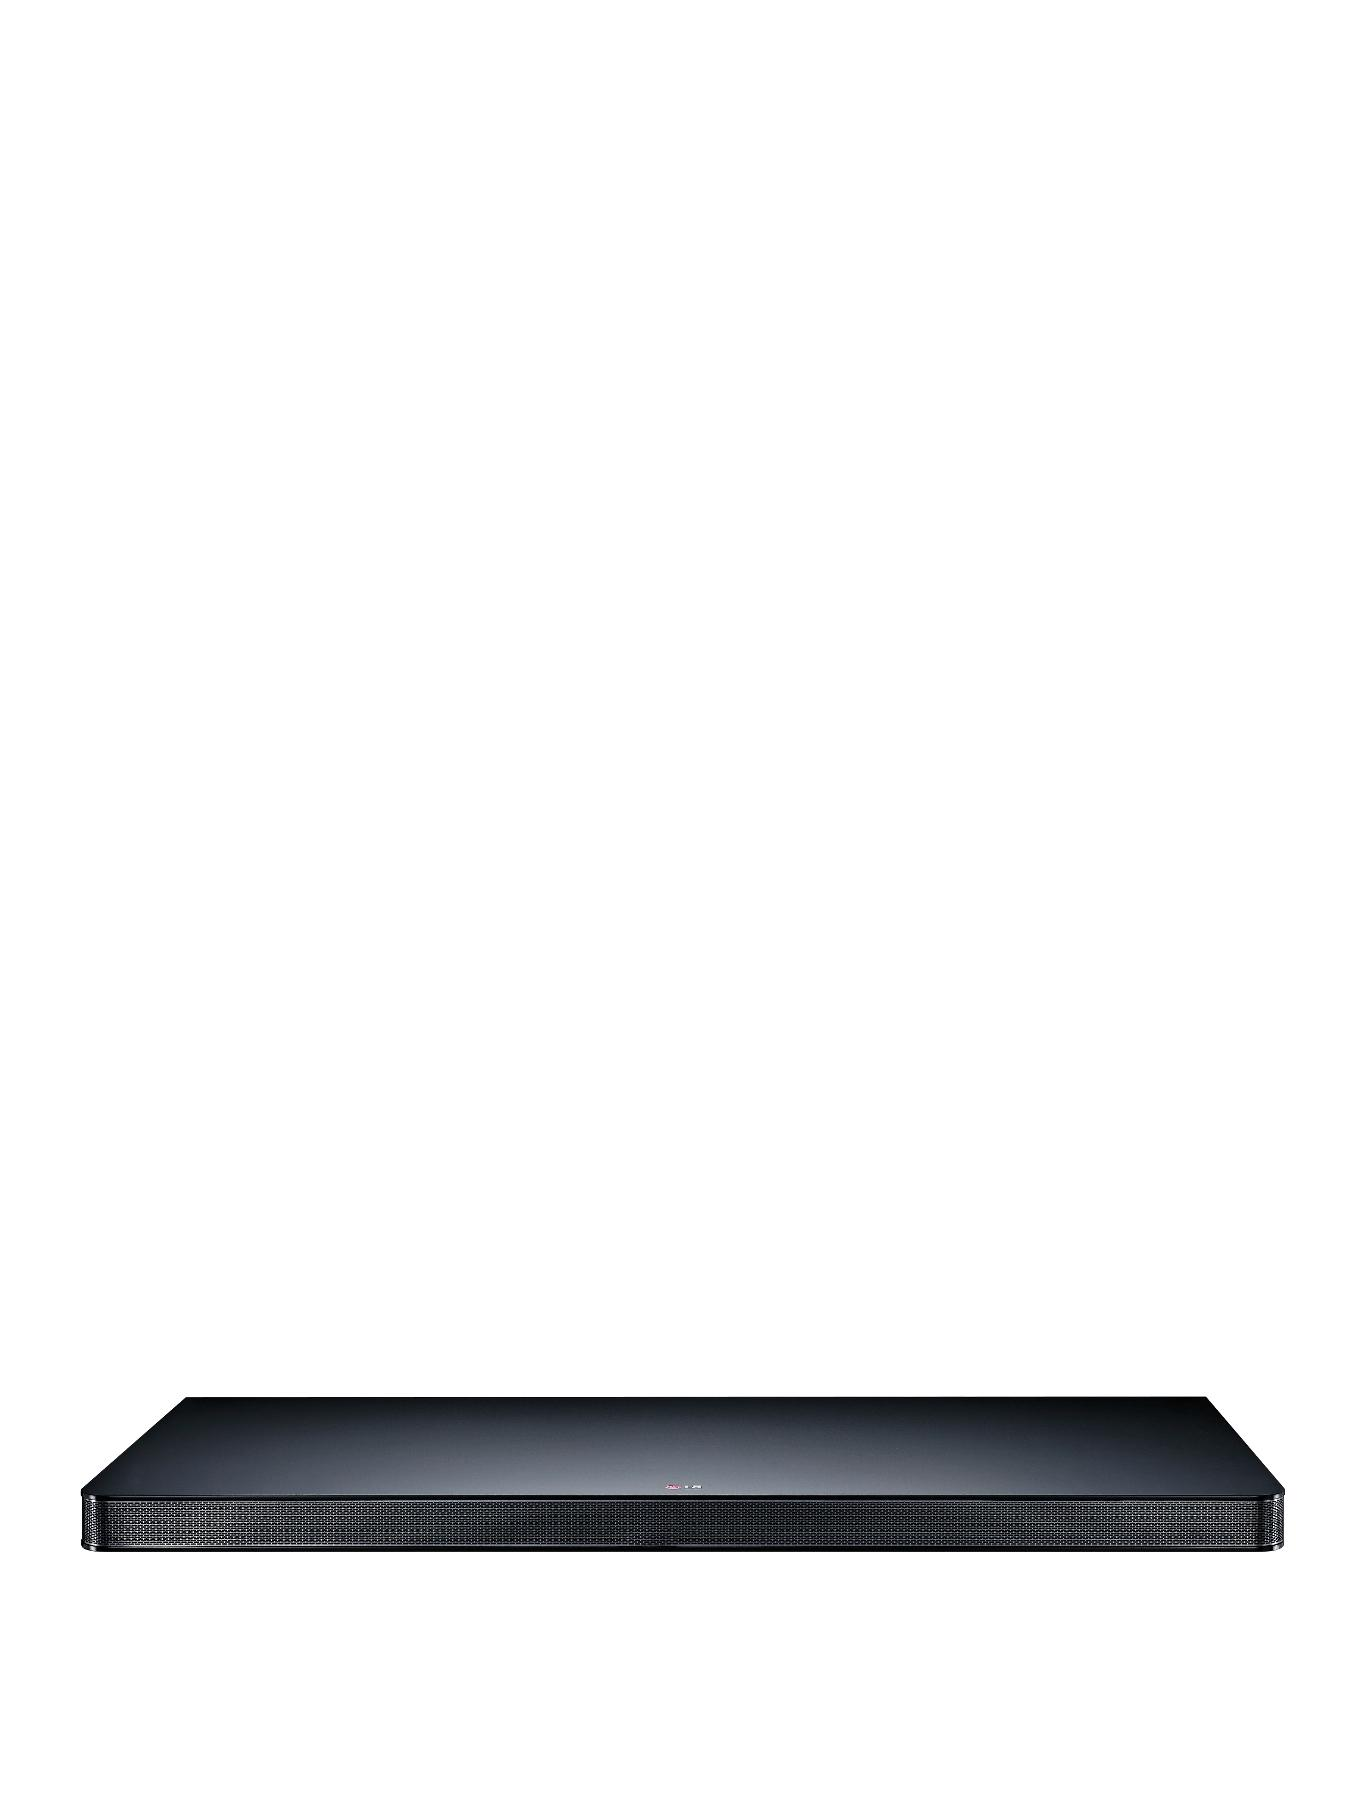 LG LAP340 4.1 Channel 120-watt Sound Plate with Bluetooth